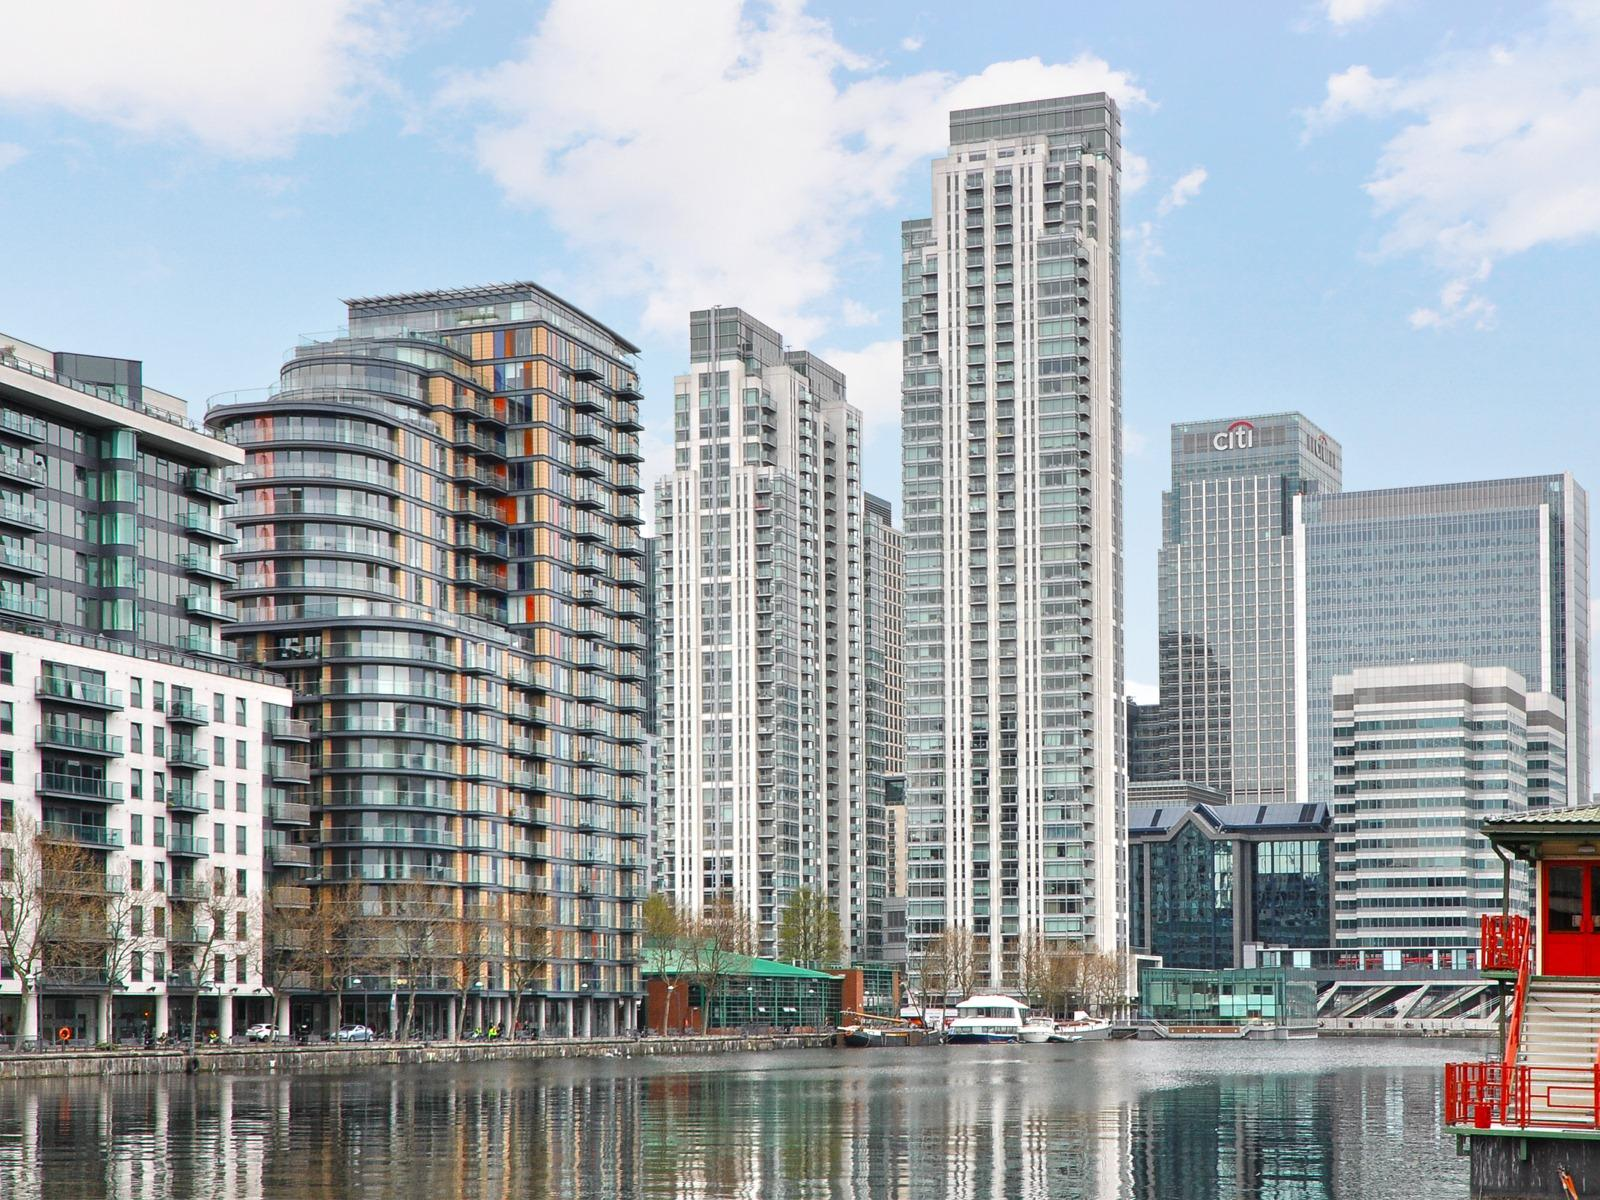 New Flats for Sale Docklands, London CBRE Residential ...